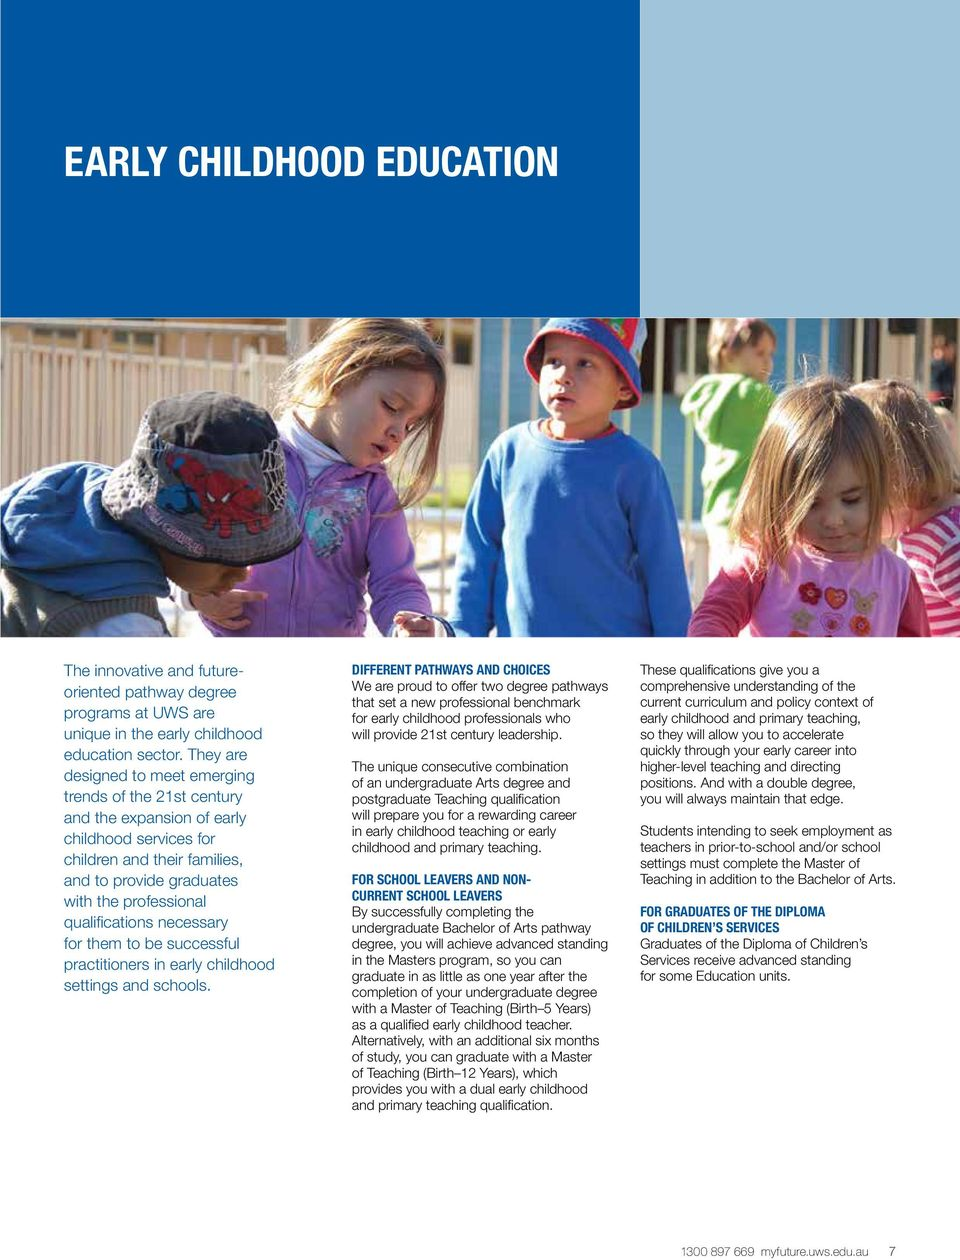 qualifications necessary for them to be successful practitioners in early childhood settings and schools.